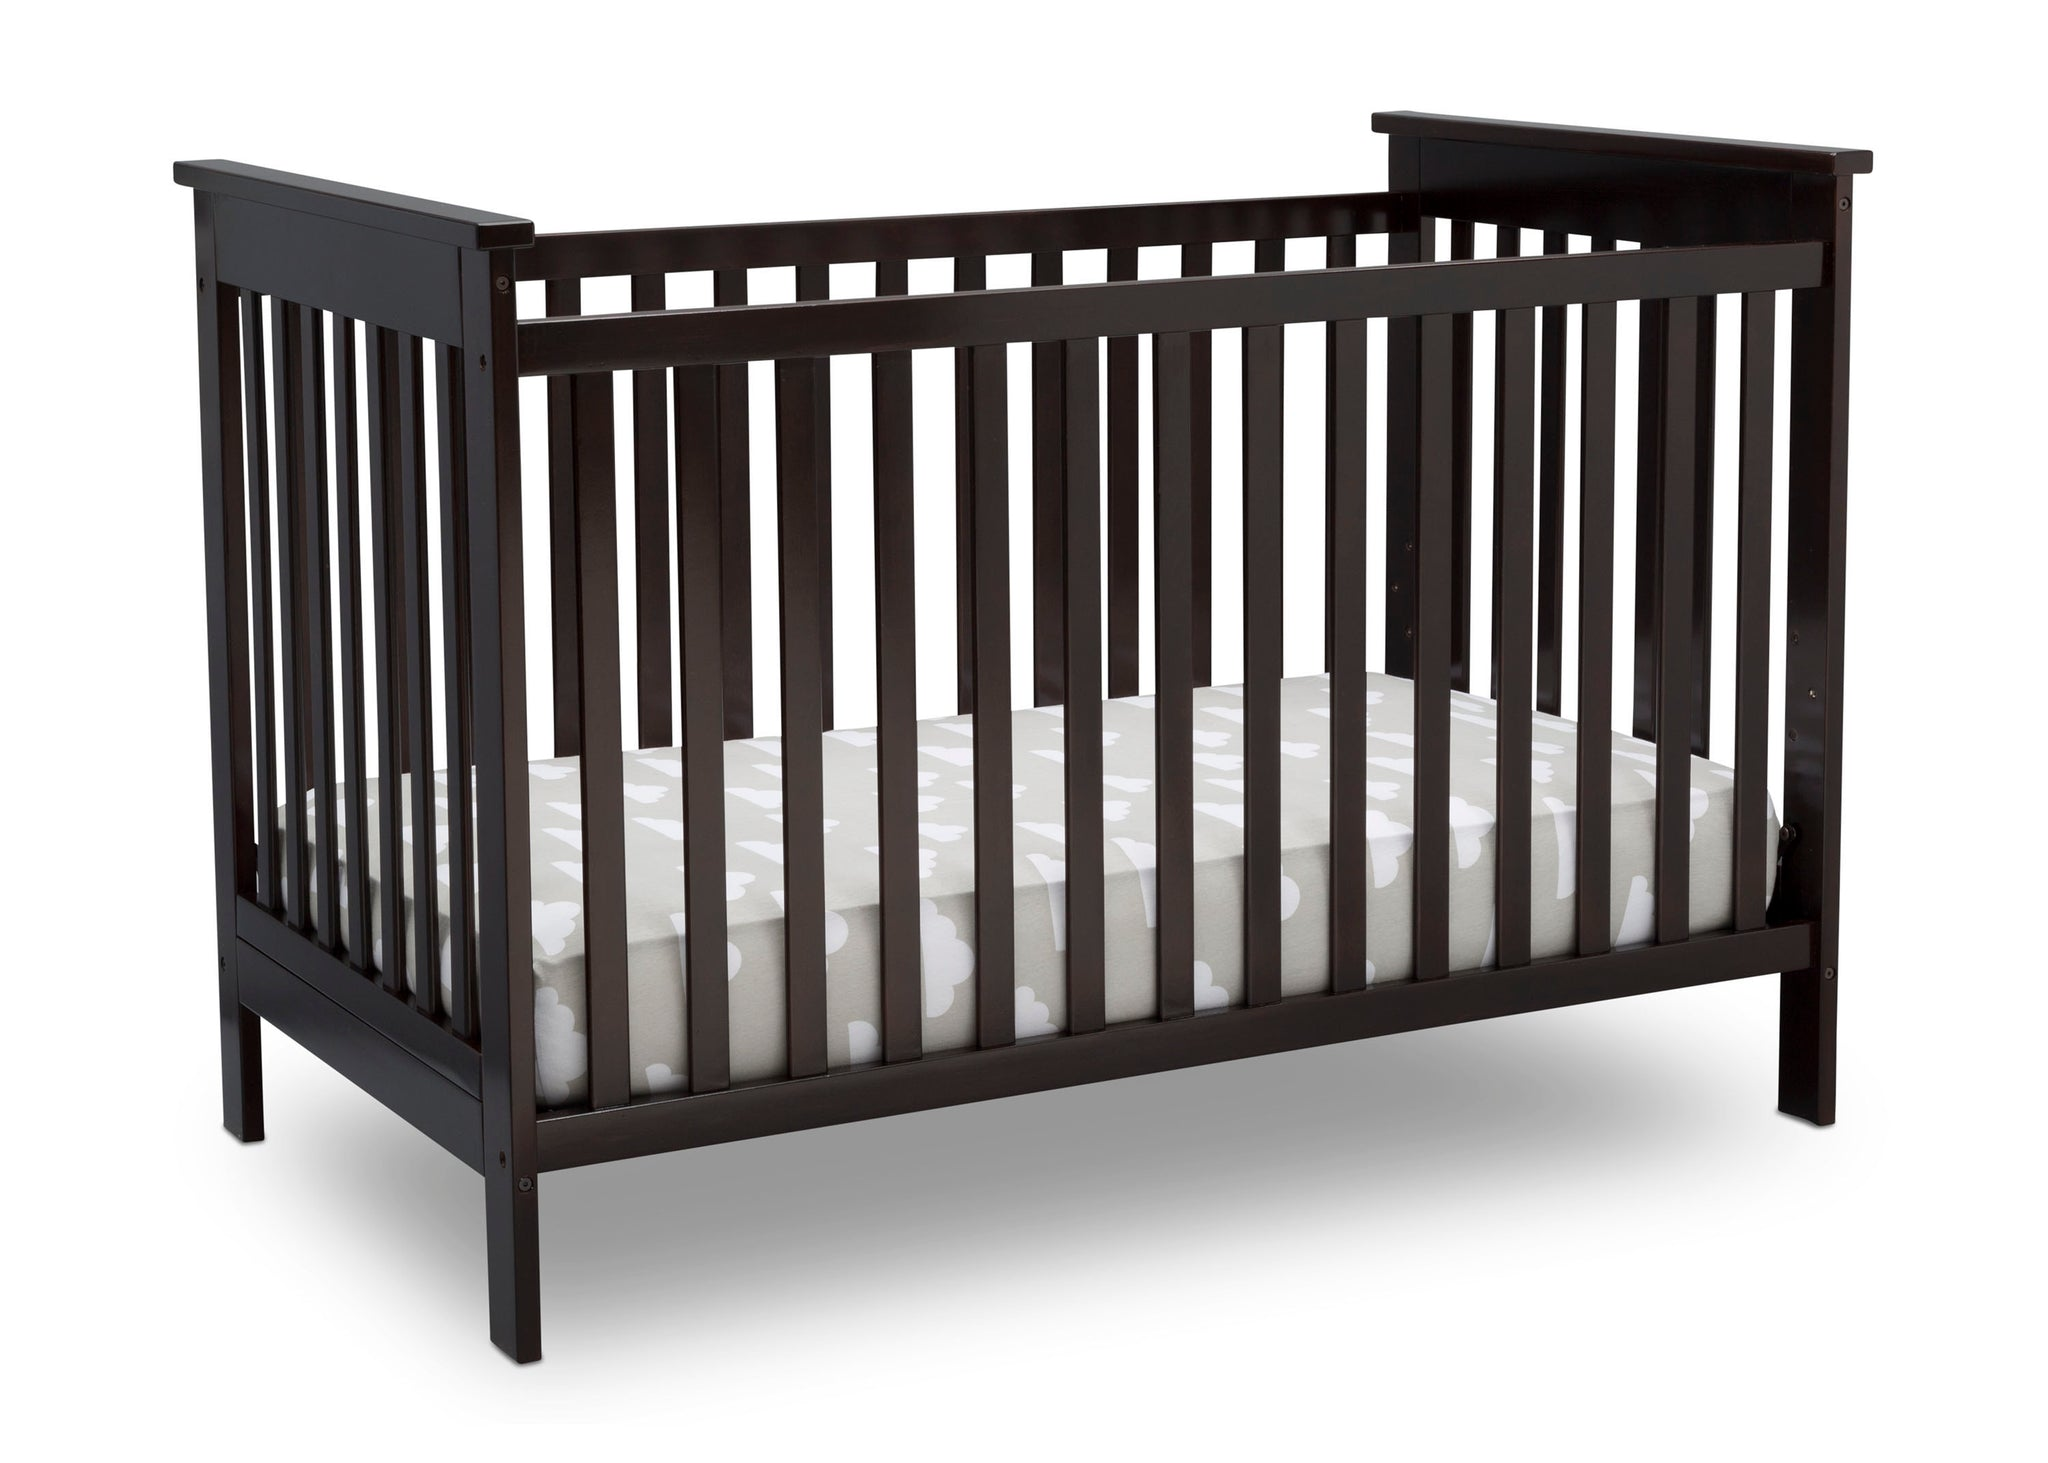 Delta Children Dark Chocolate (207) Adley 3-in-1 Crib (W102130) Right Silo c3c